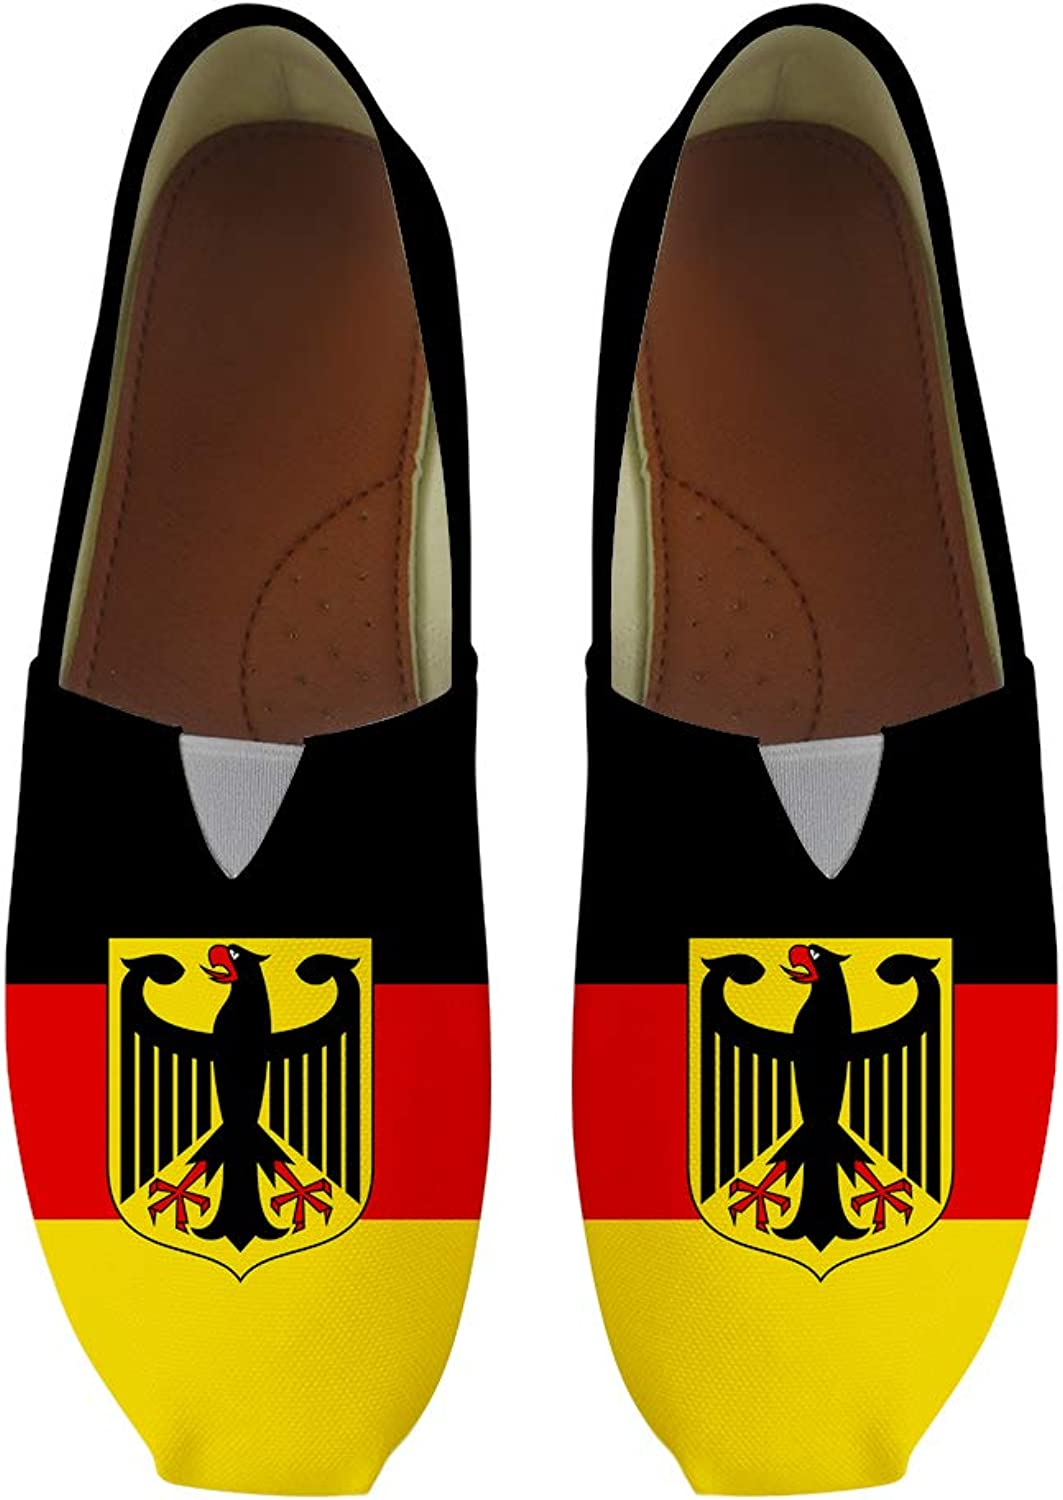 Owaheson Classic Canvas Slip-On Lightweight Driving shoes Soft Penny Loafers Men Women German Flag National Emblem